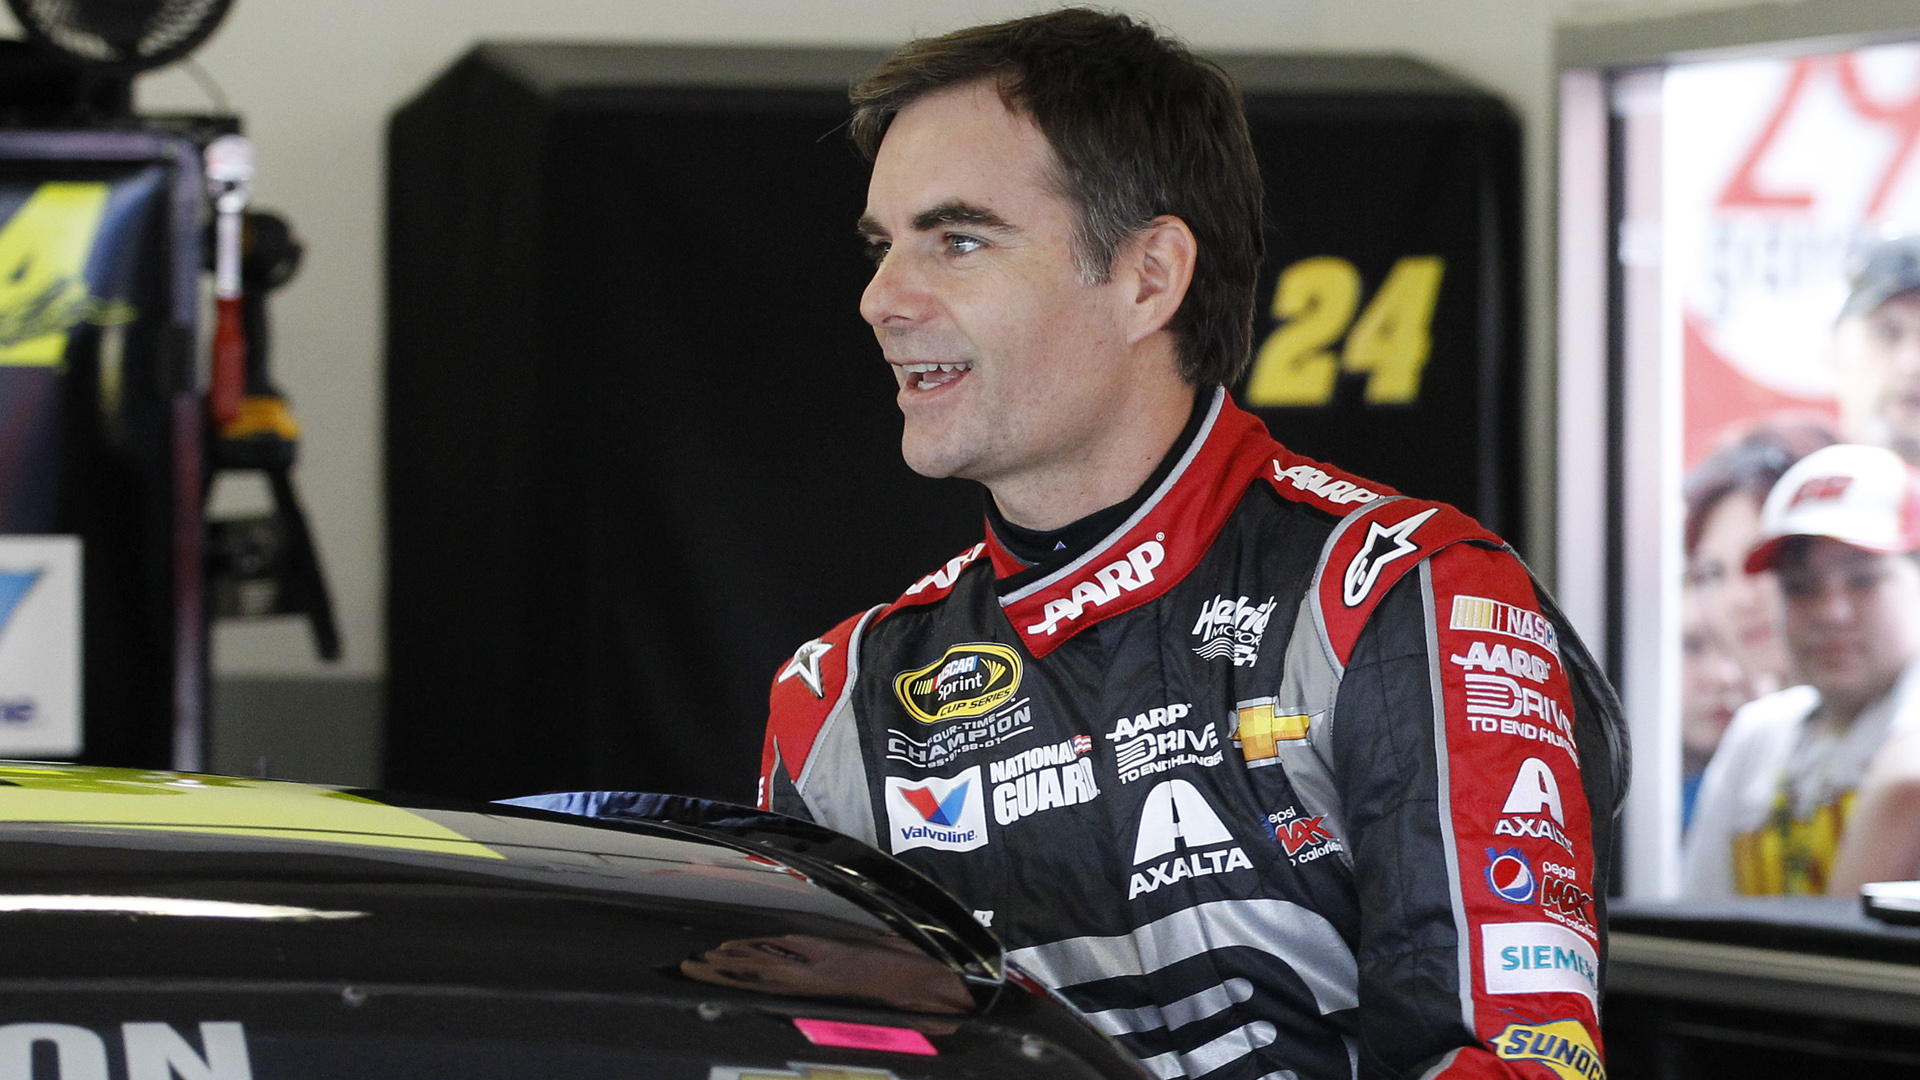 Jeff Gordon-030614-AP-FTR.jpg